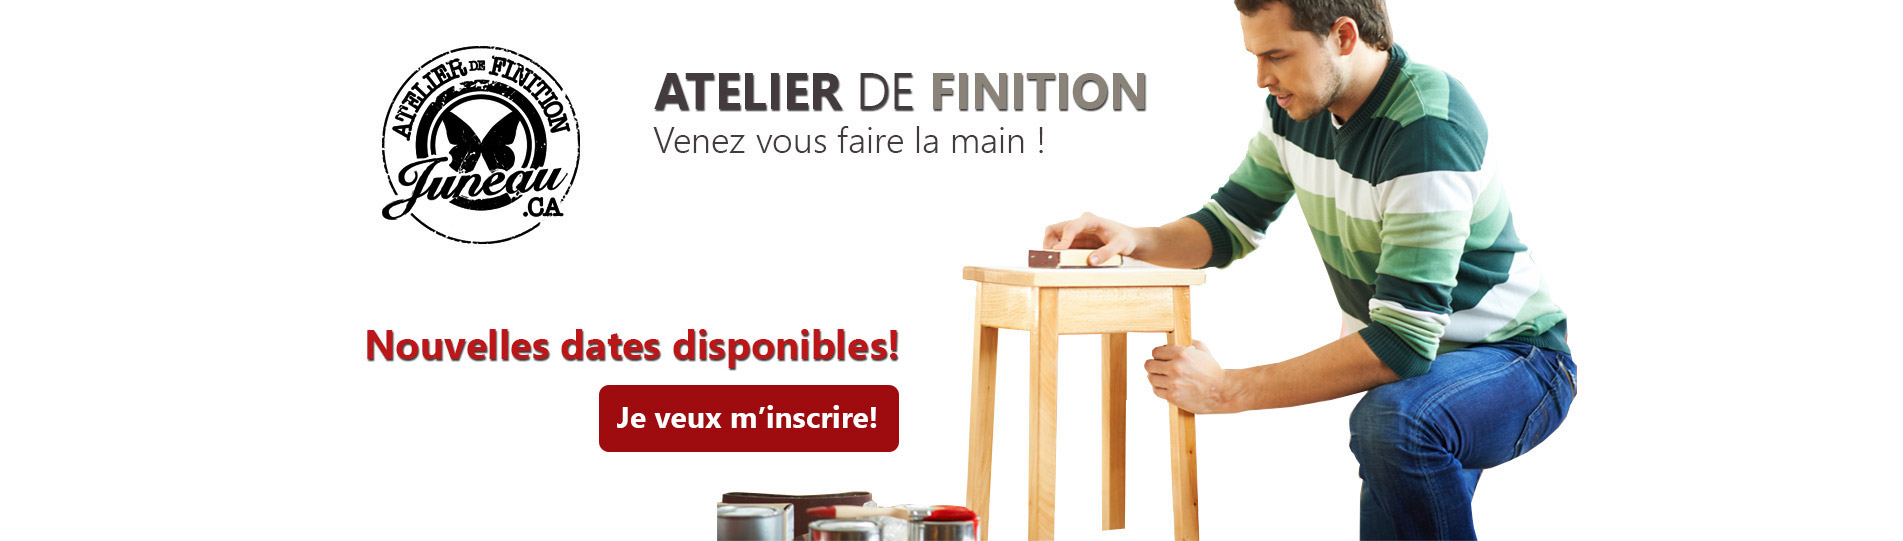 Atelier de finition Juneau